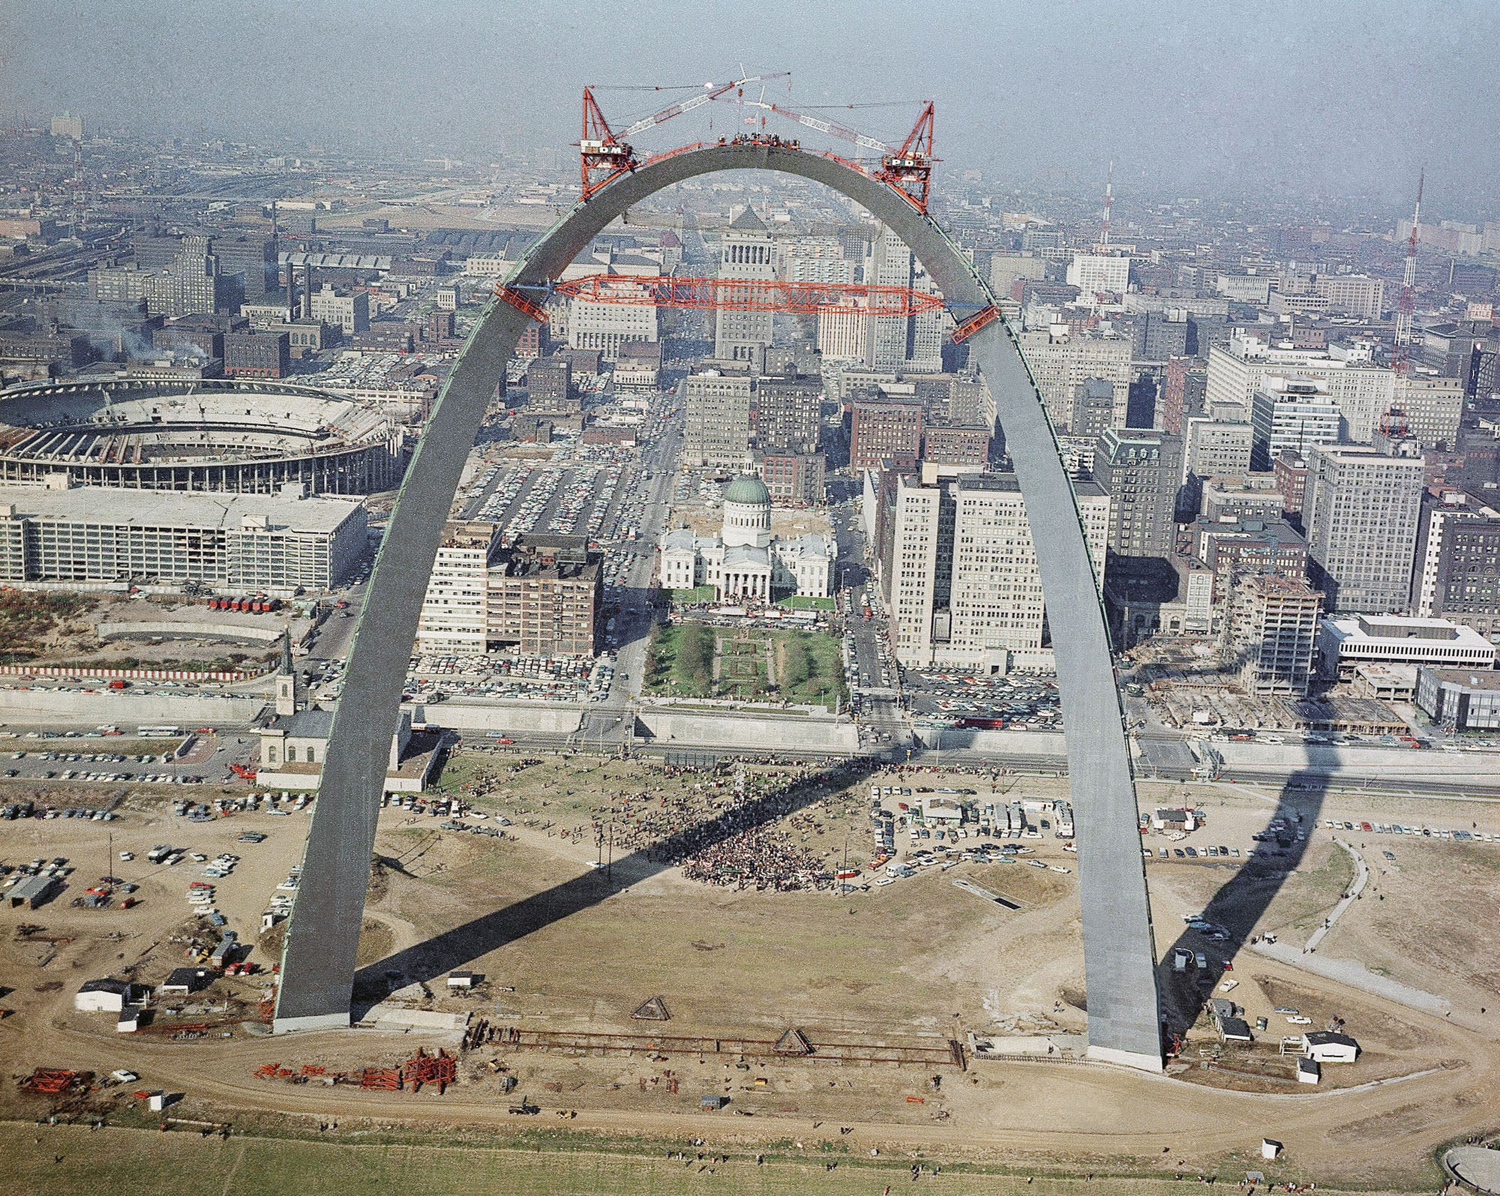 The placing of last link in the Gateway Arch, 1965, in St. Louis, Missouri.